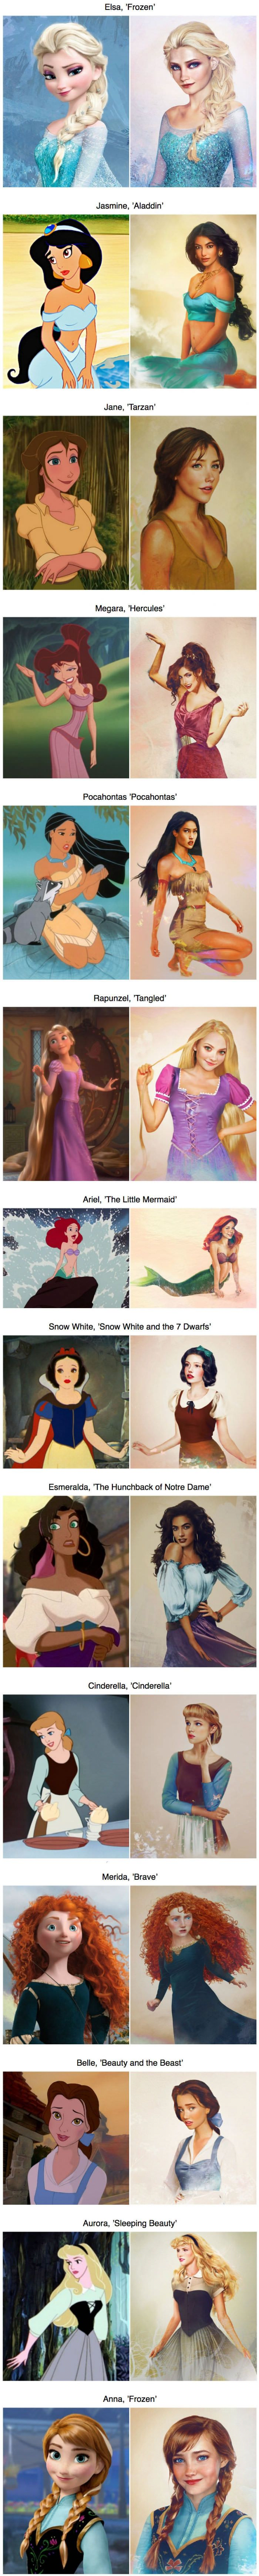 What the real Disney princesses looked like (By Jirka Väätäinen)